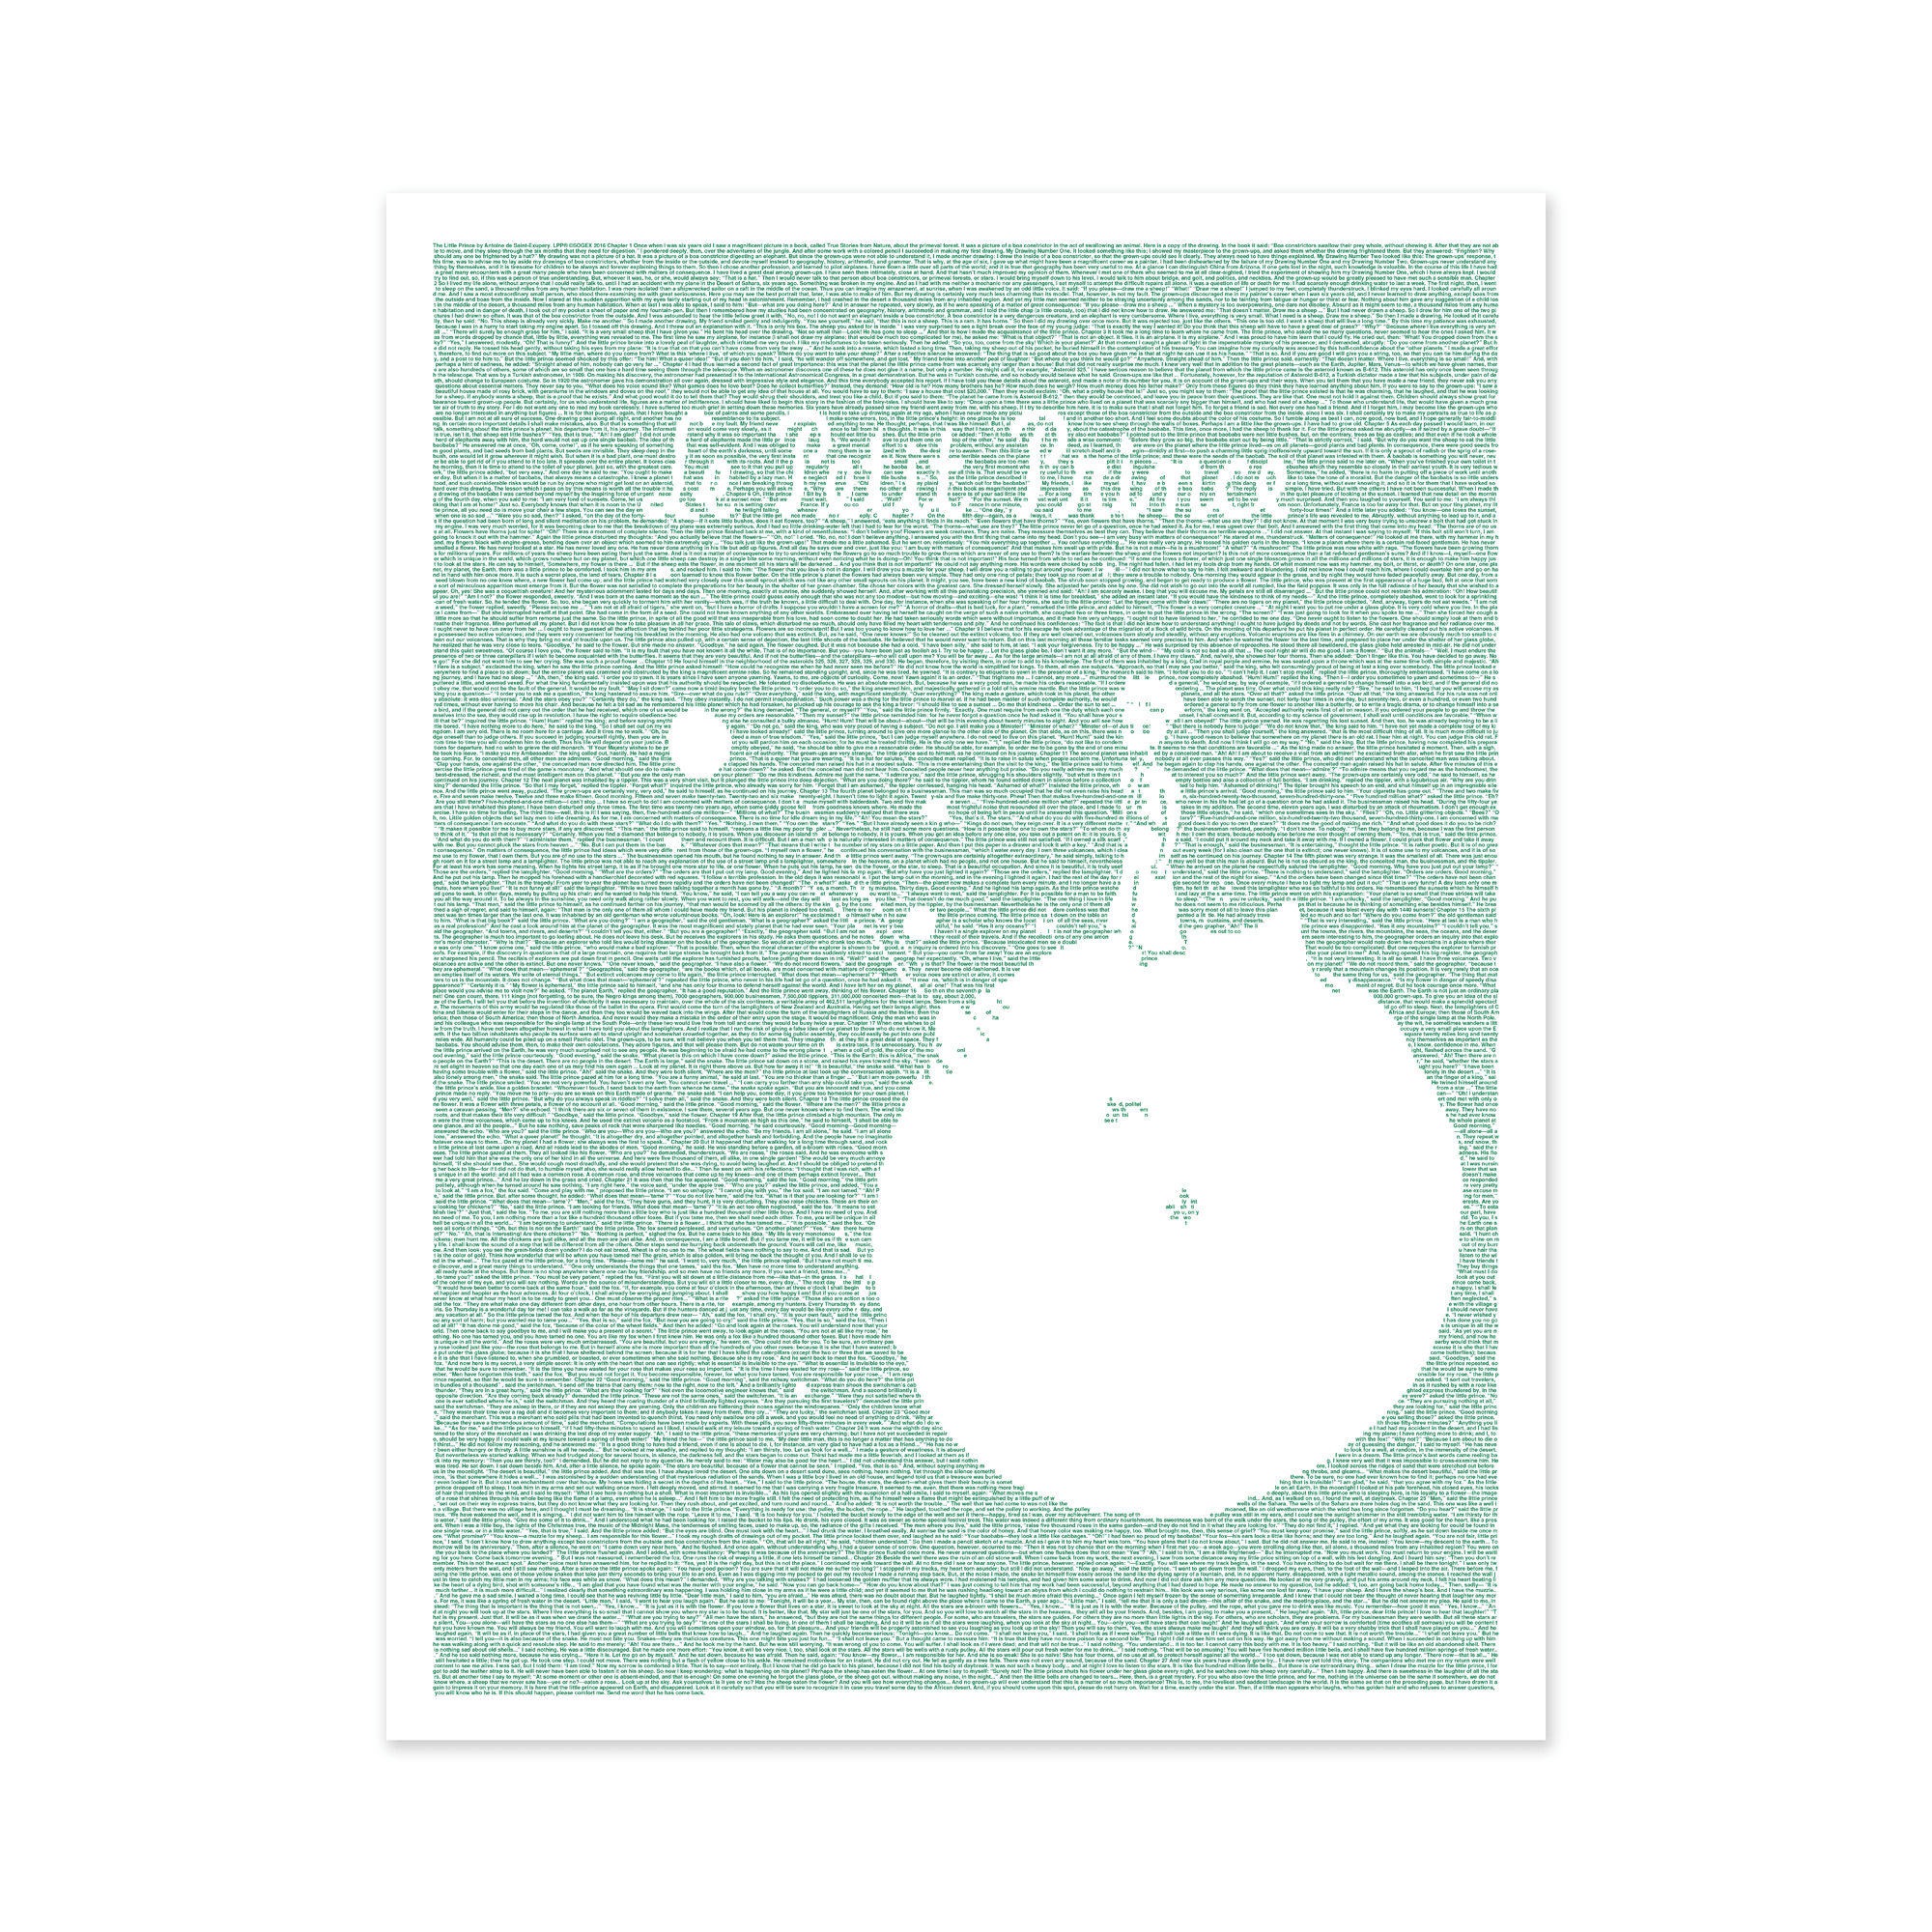 Poster Judging Form Created From The Text Of The Little Prince